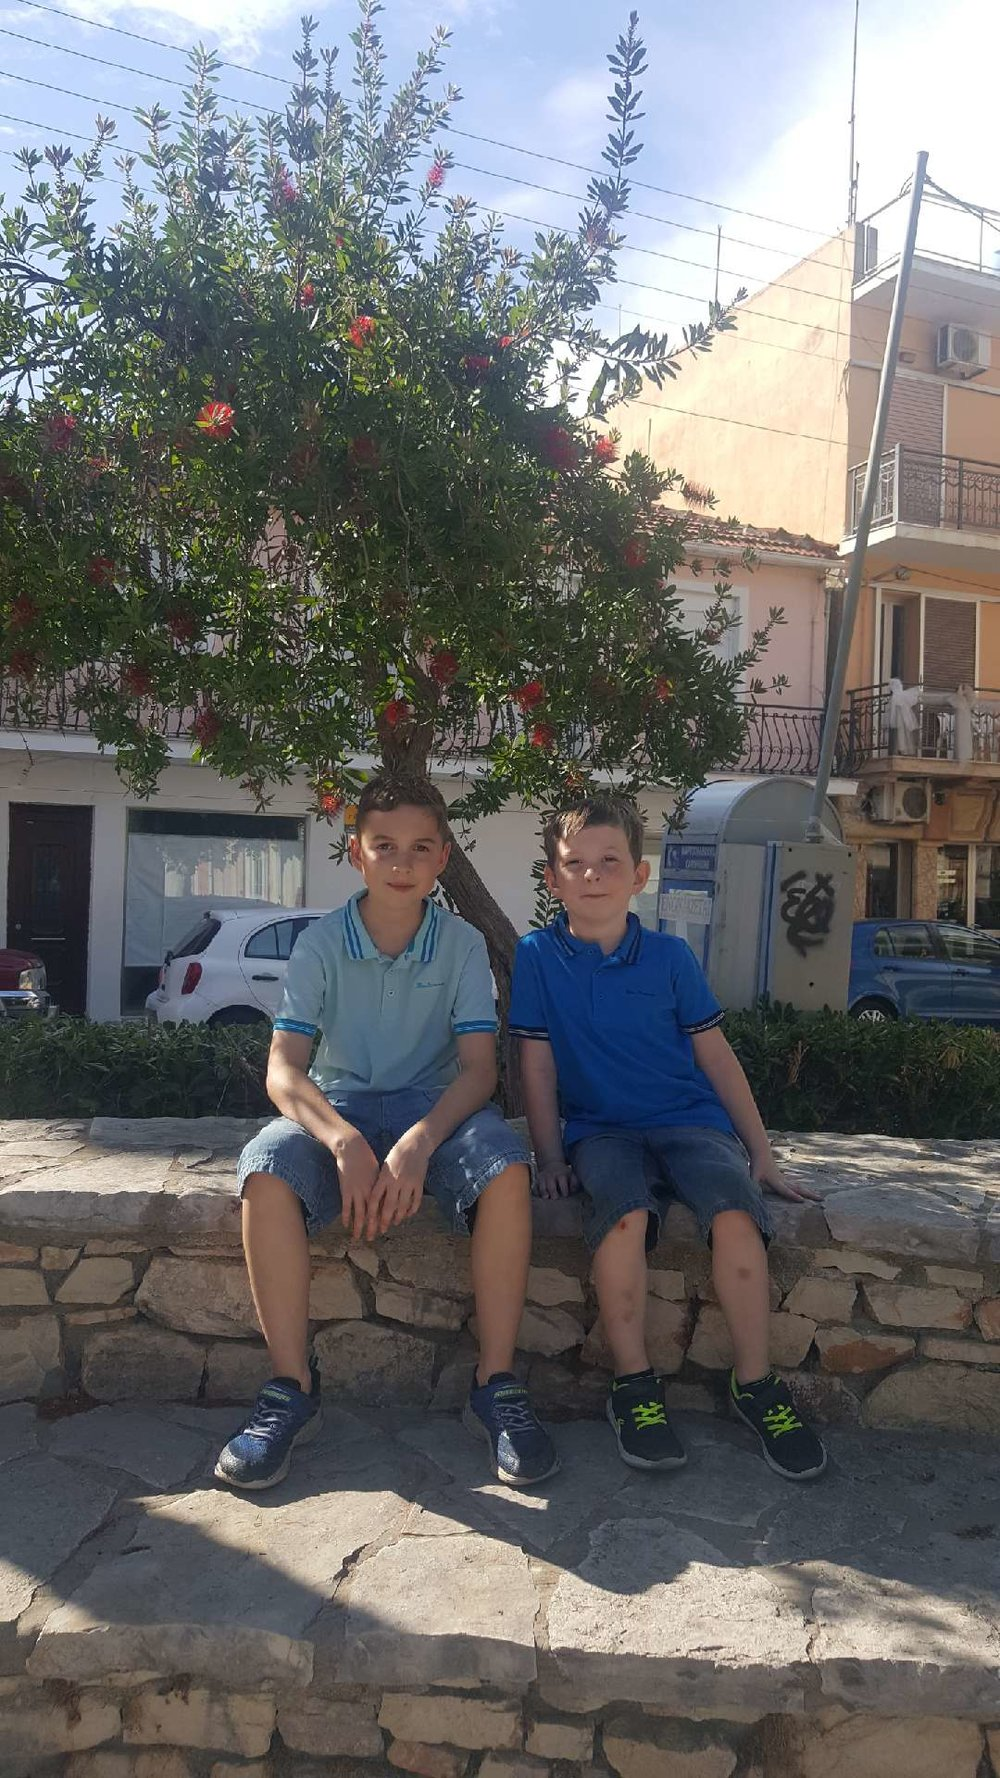 Seth and Leon relaxing in Greece